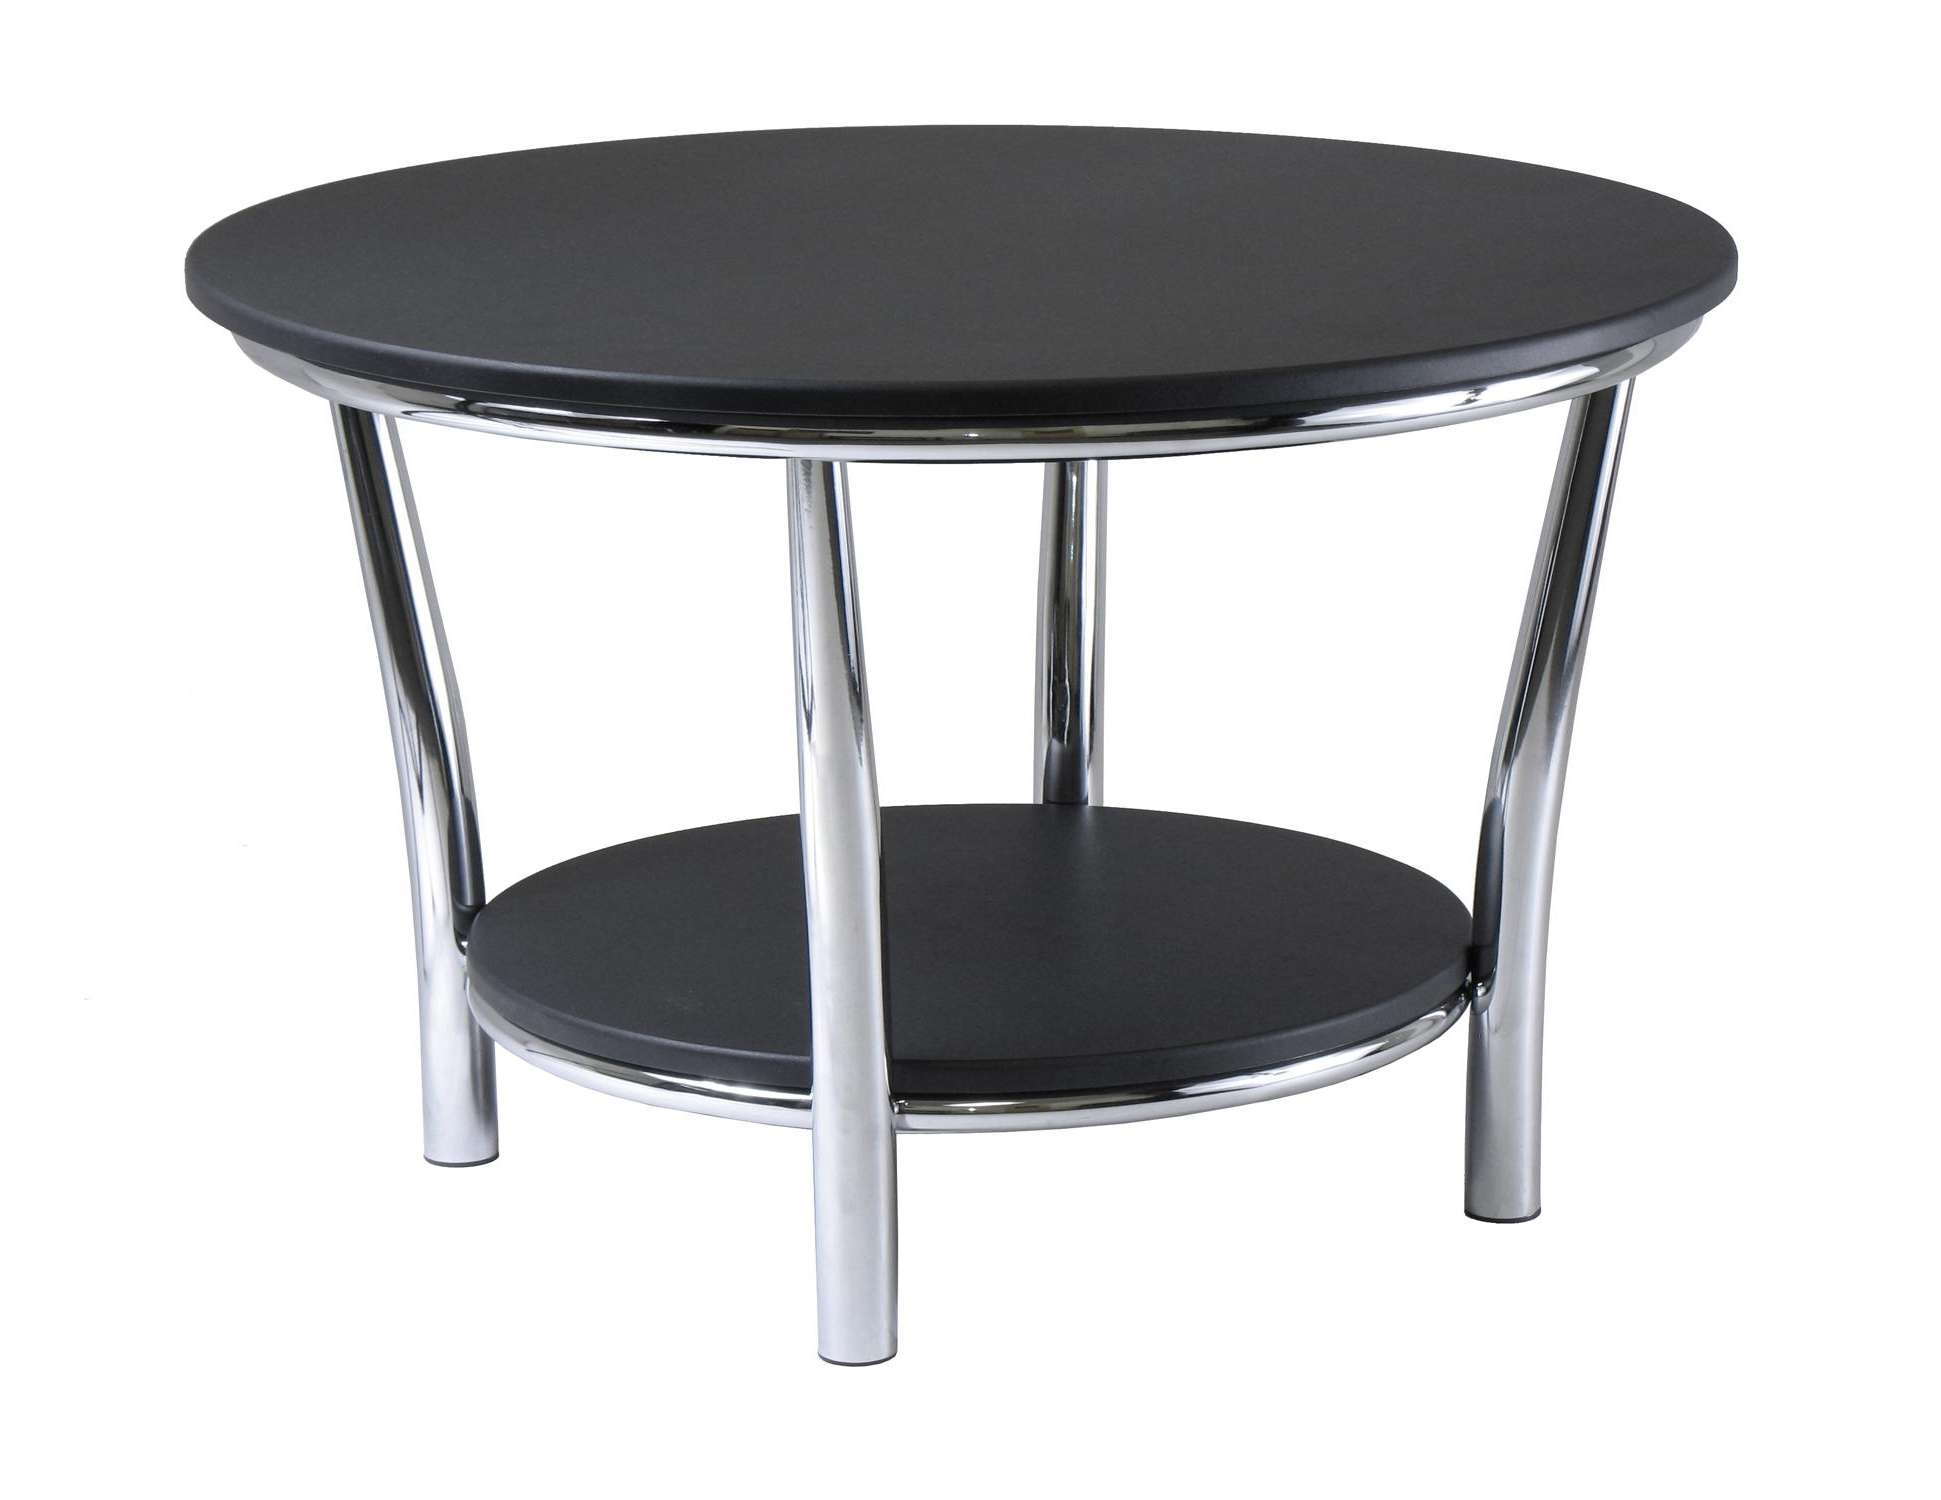 Well Liked Oval Black Glass Coffee Tables Intended For Coffee Tables : Table Small Glass Coffee Side Design Cocktail (View 20 of 20)